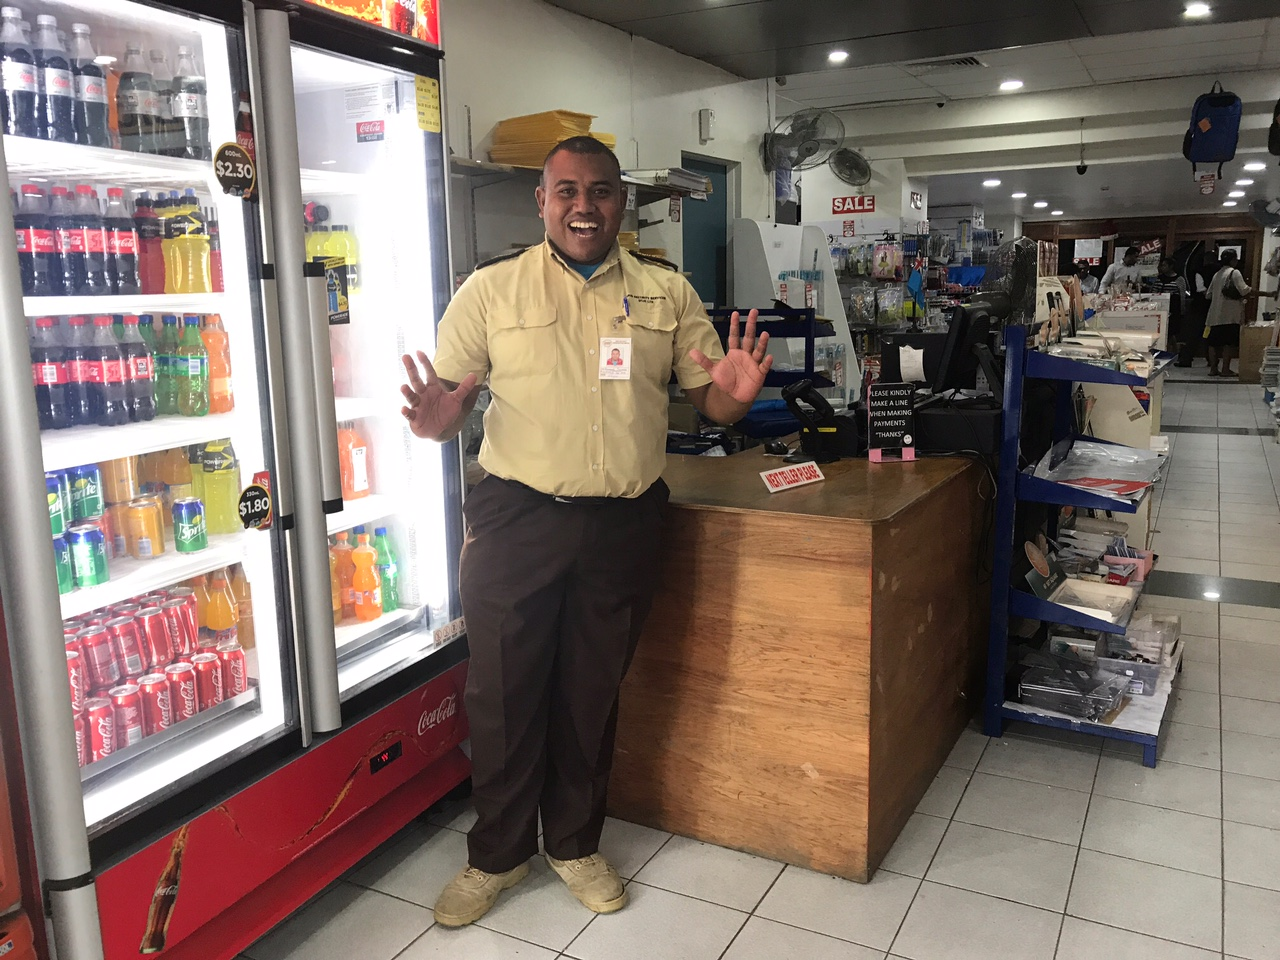 """The security guard at the post office. You'll notice that when I take photos of people their mouths are open. This is because instead of cheese, they are saying """"Bula!"""""""